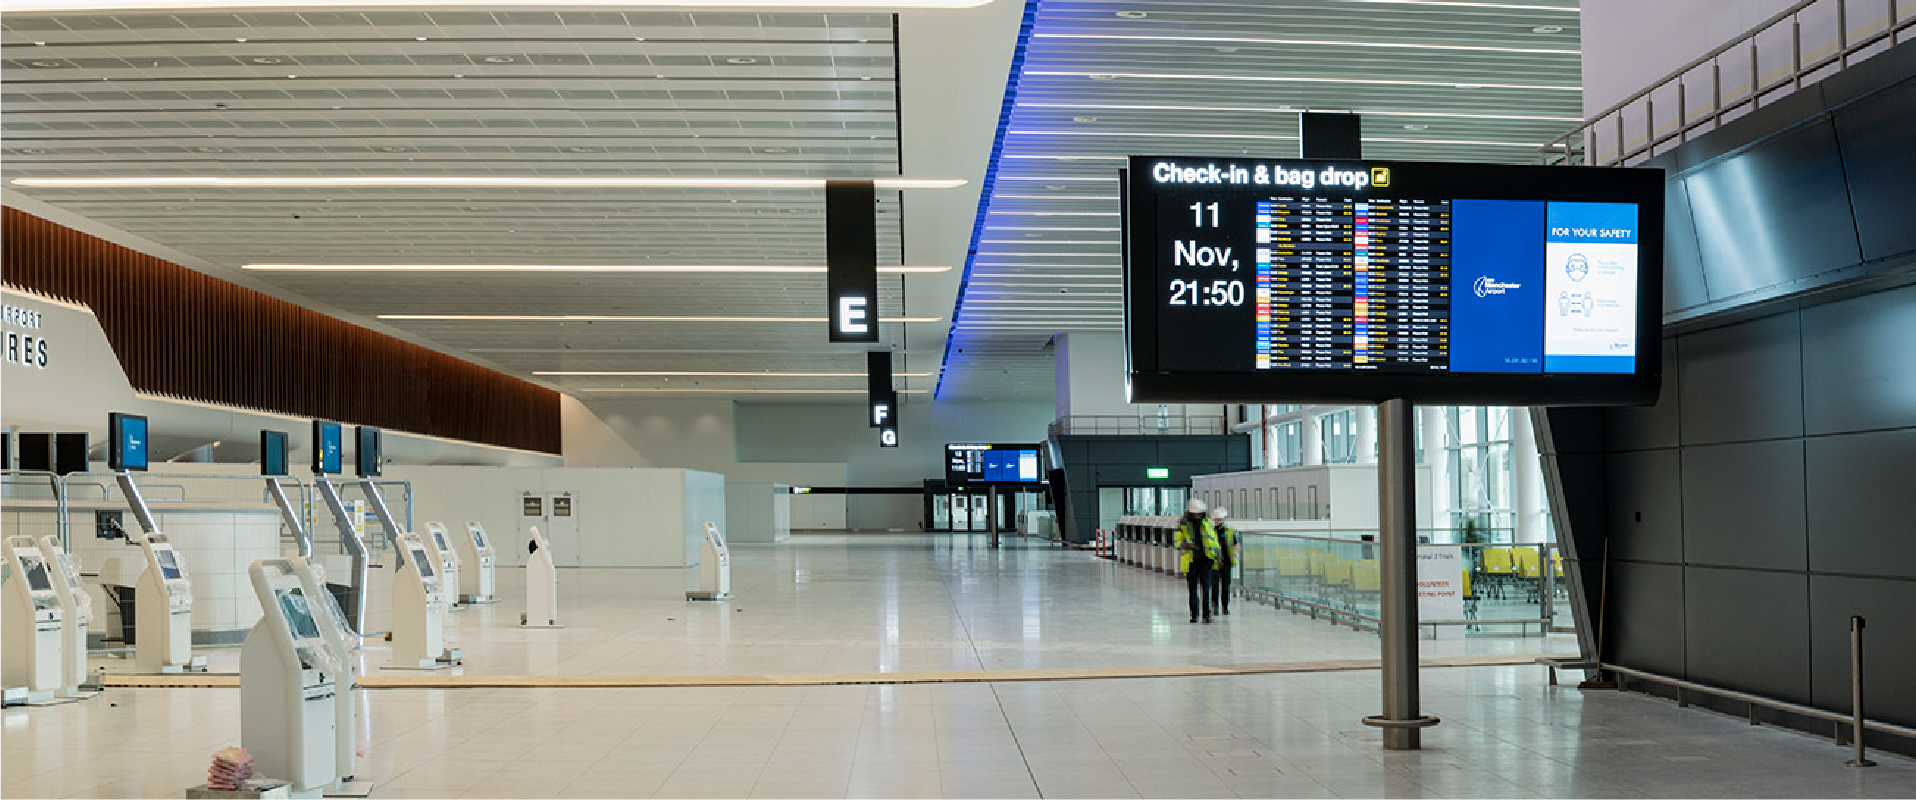 Case Study - Manchester Aiport Terminal 2 Transformation Project